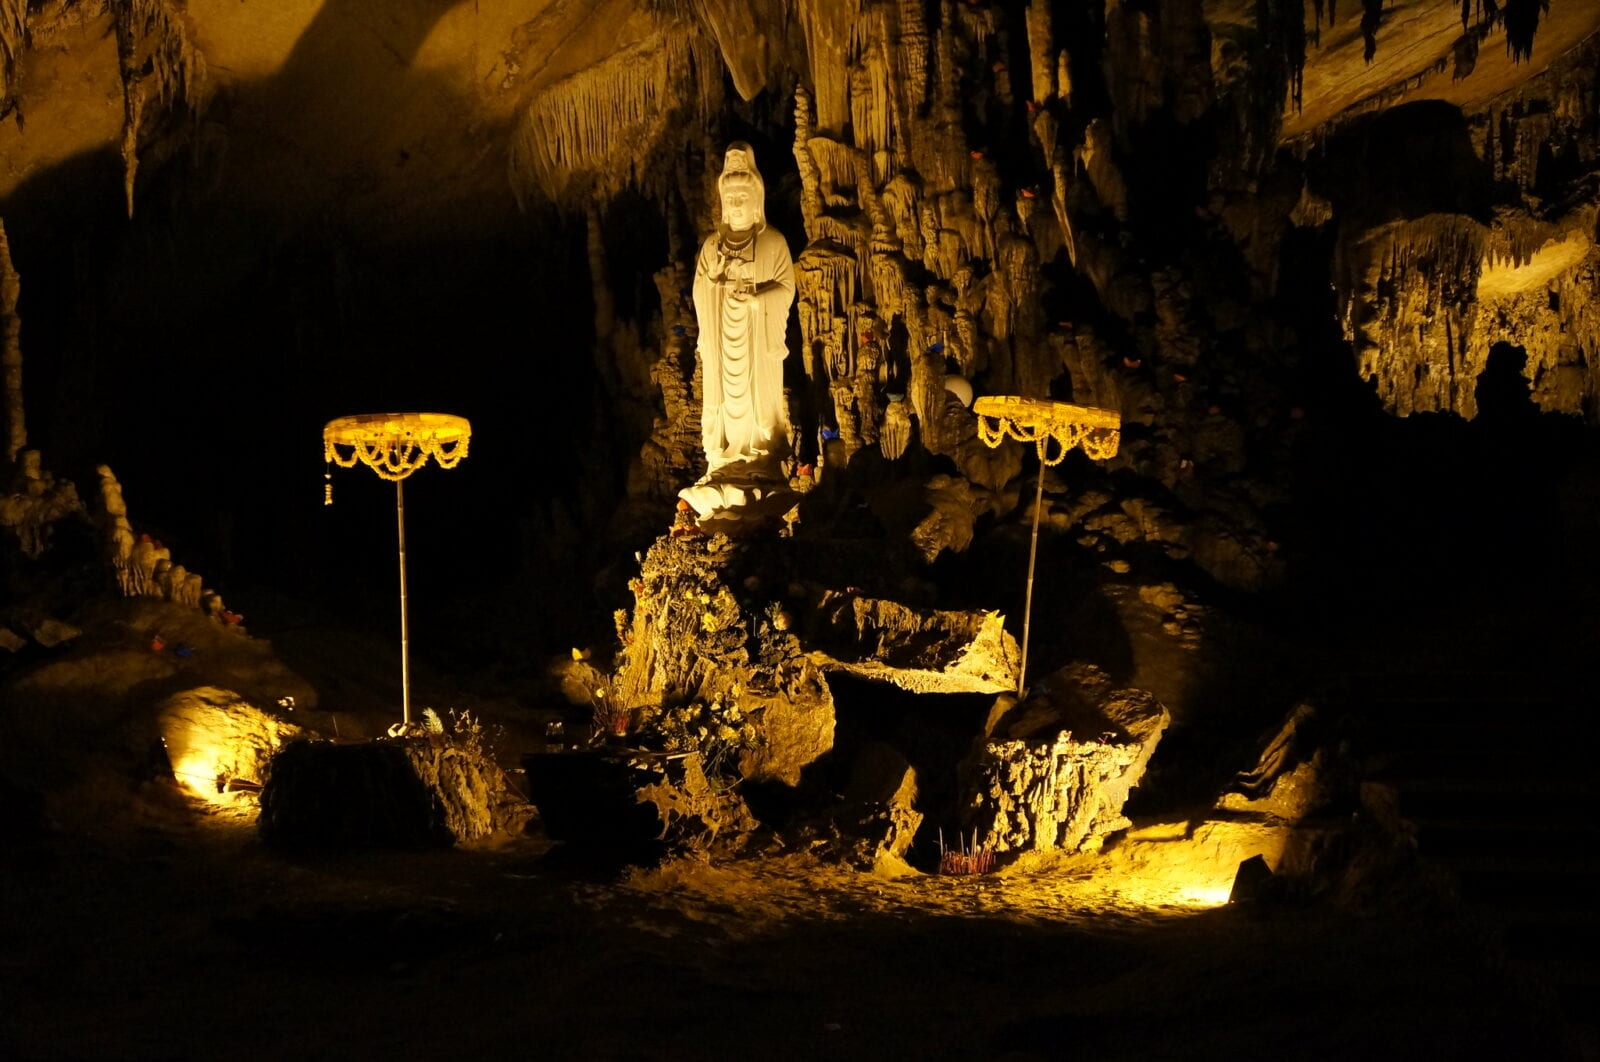 Image of a statue in Hua Ma Cave in Ba Be National Park in Vietnam